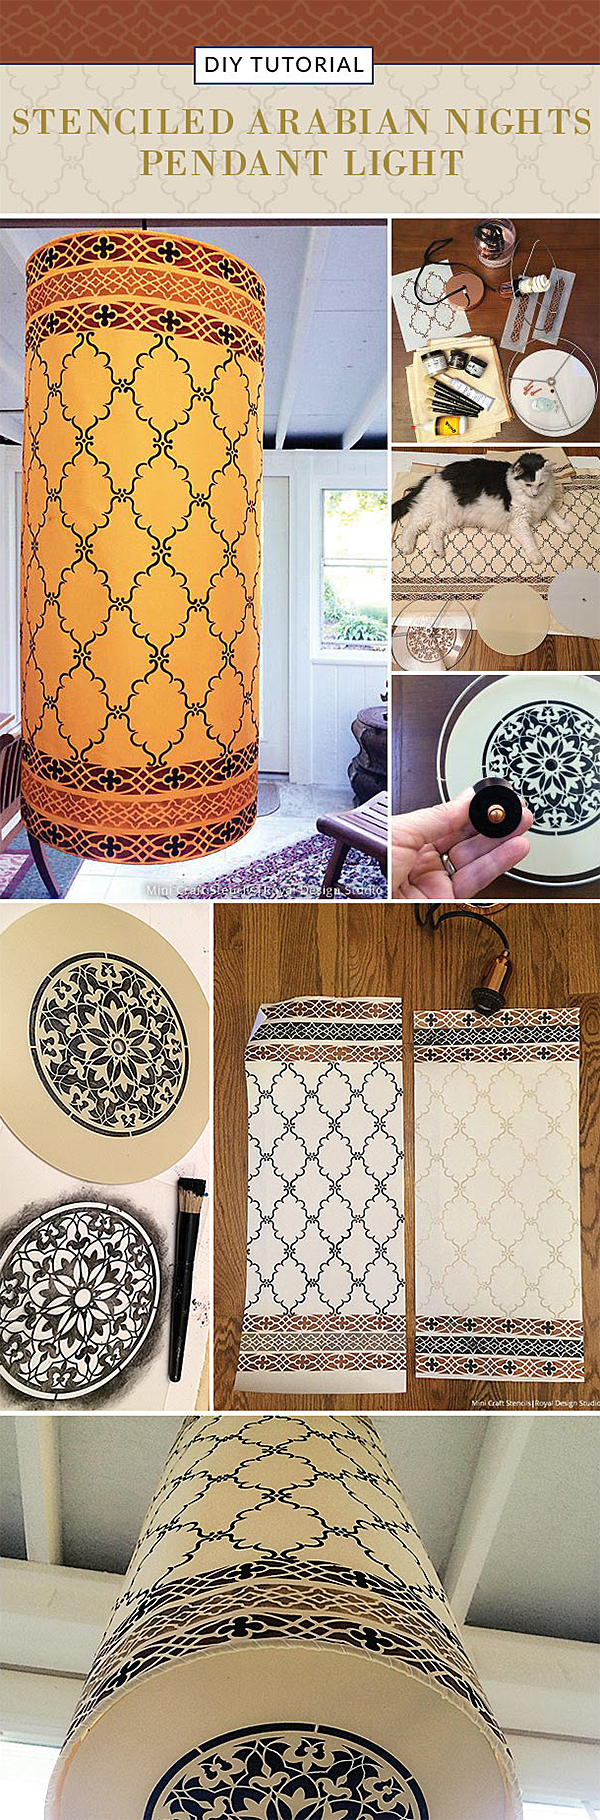 http://paintandpattern.com/stenciled-arabian-nights-pendant-light/